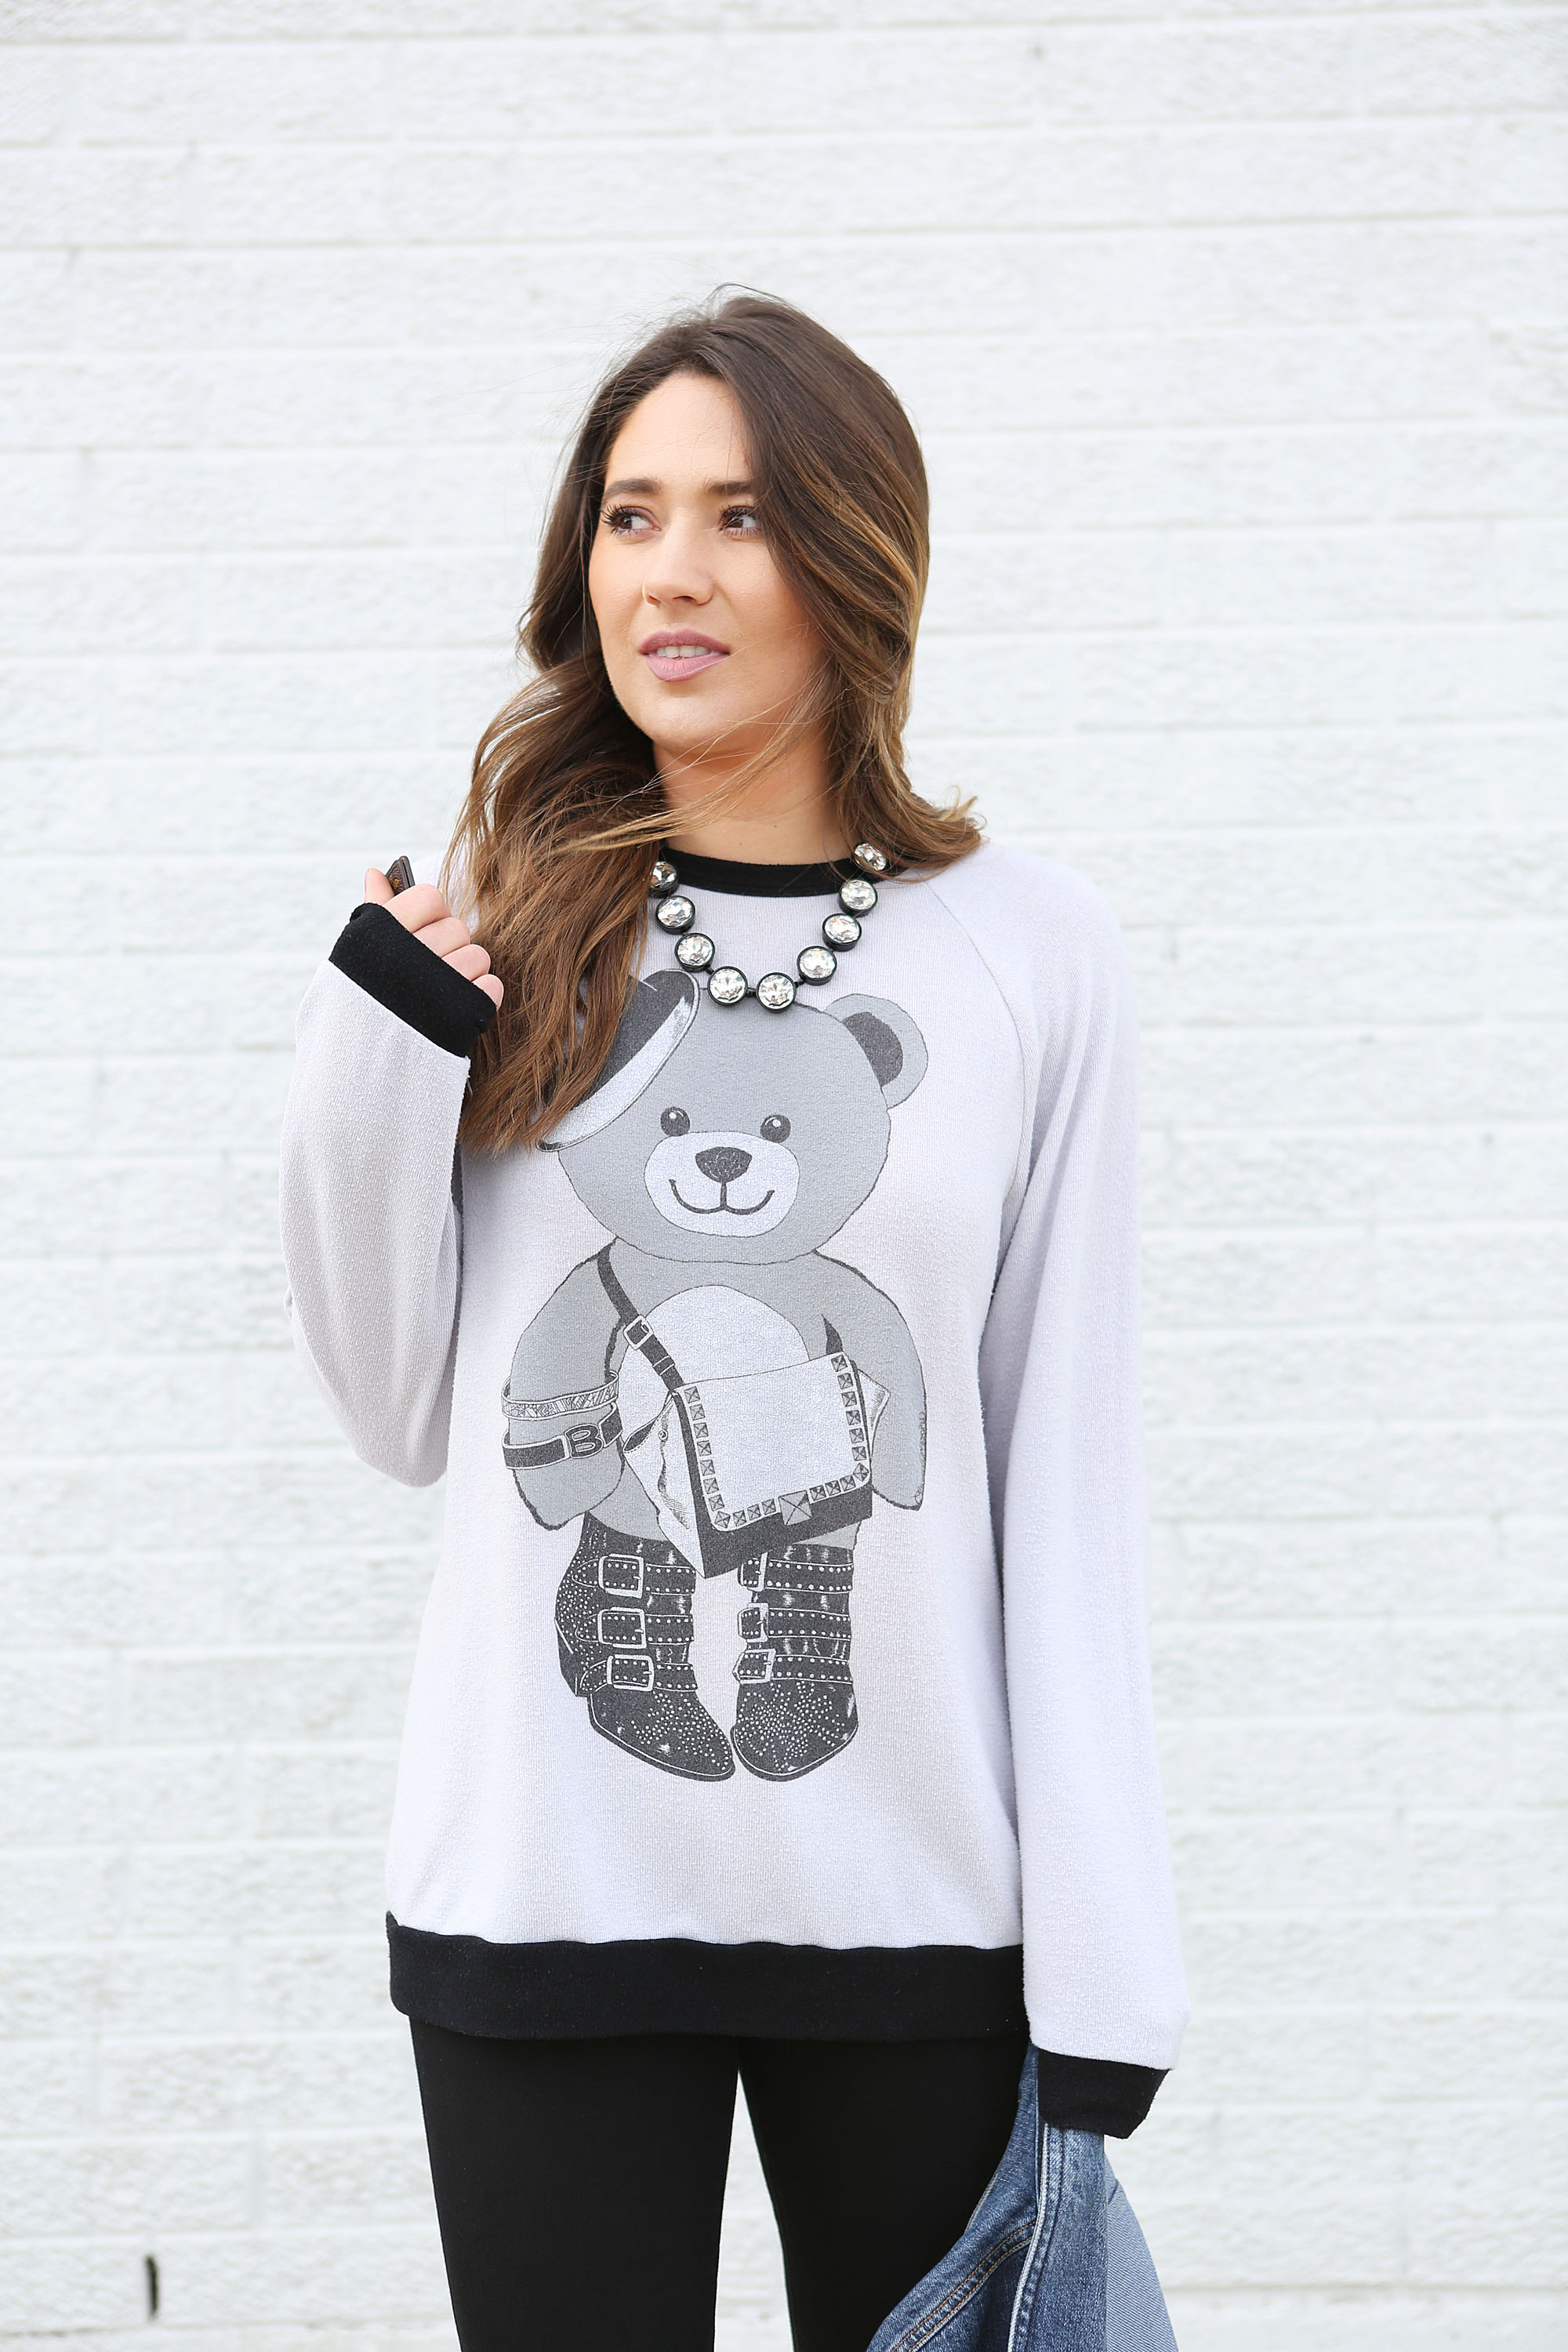 statement-necklace-comfy-sweater